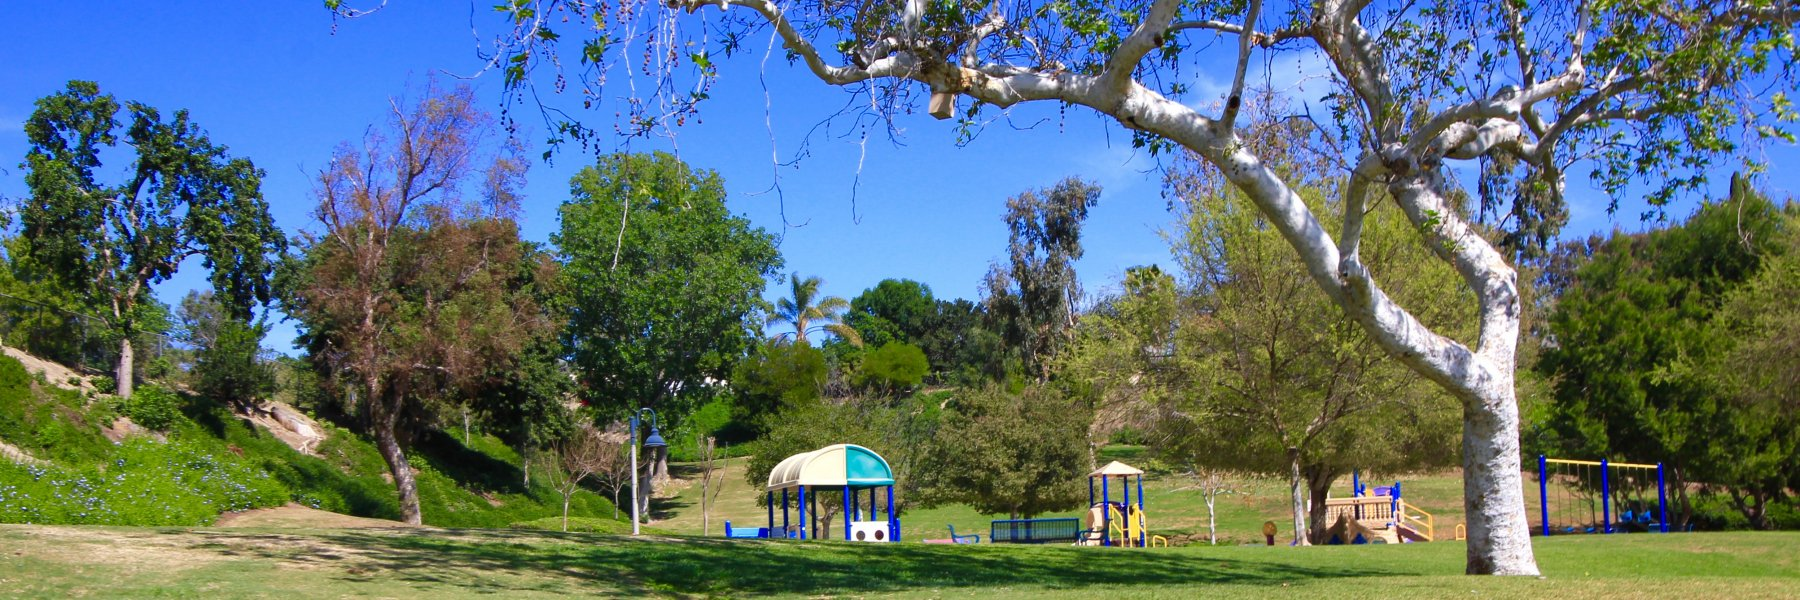 La Paz South is a community of homes in Mission Viejo California